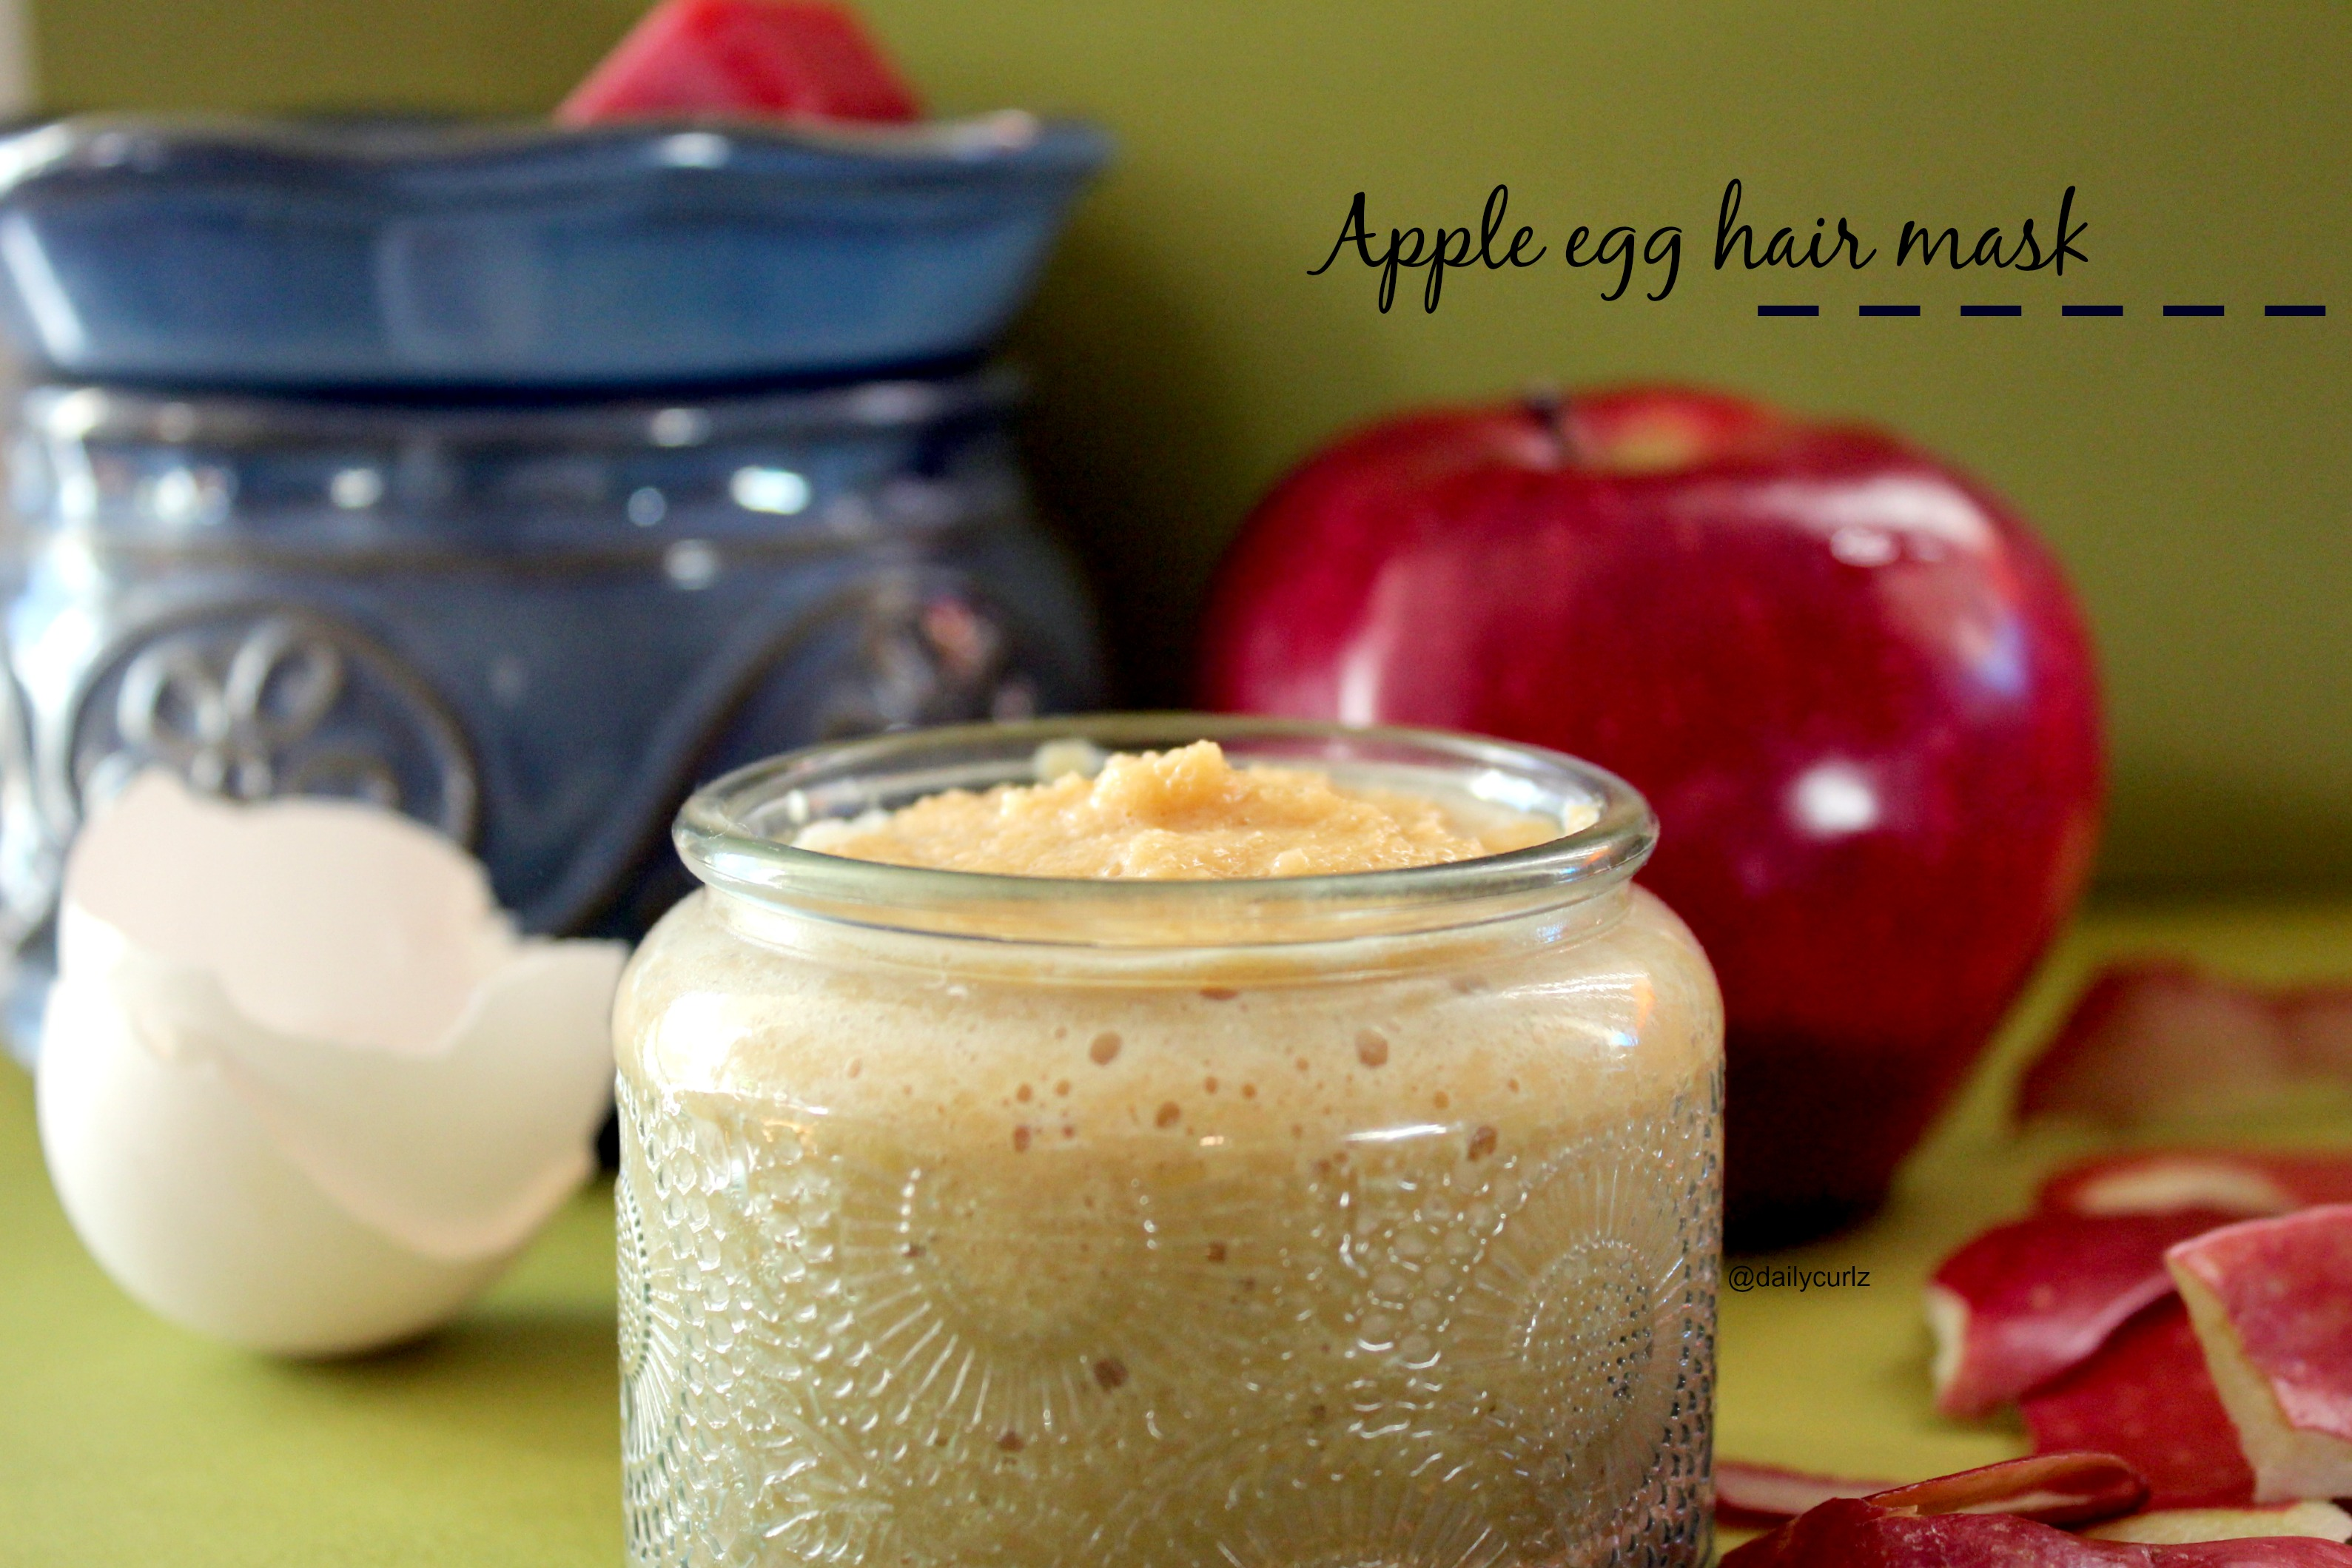 Scented Apple egg Hair mask /Mascarilla casera de manzana y huevo